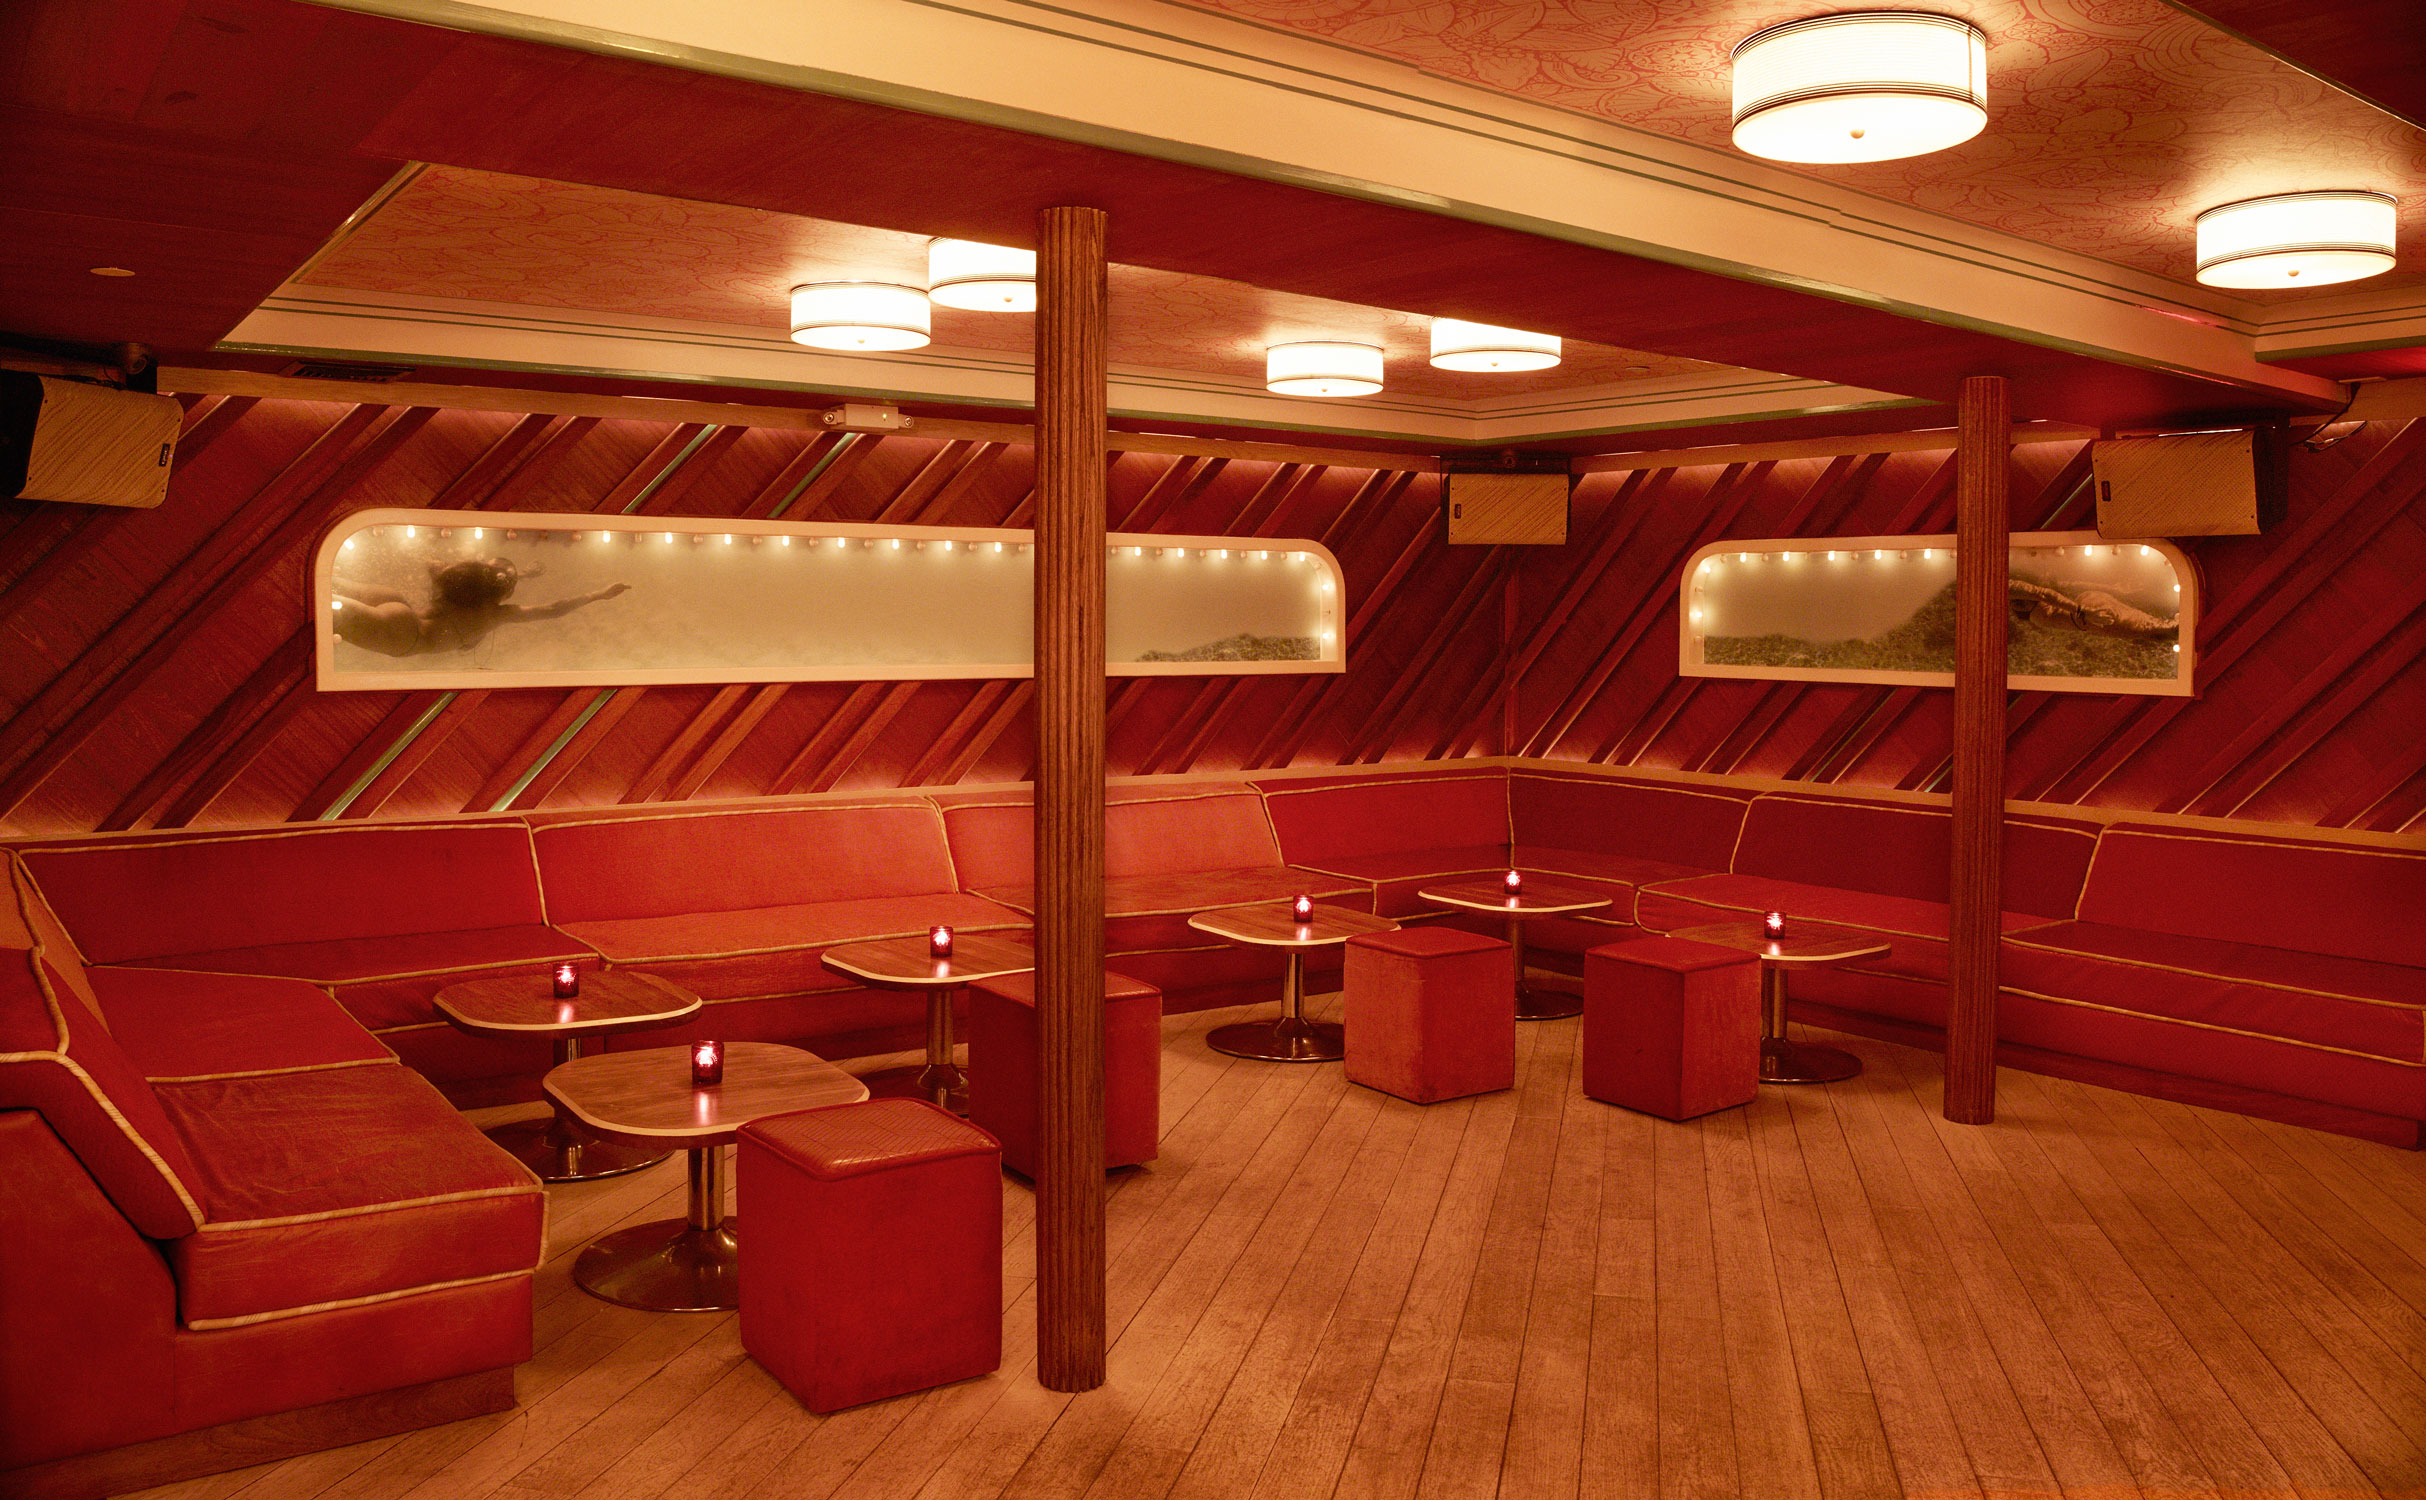 RED_ROOM_H_145-47_COMP_A.jpg